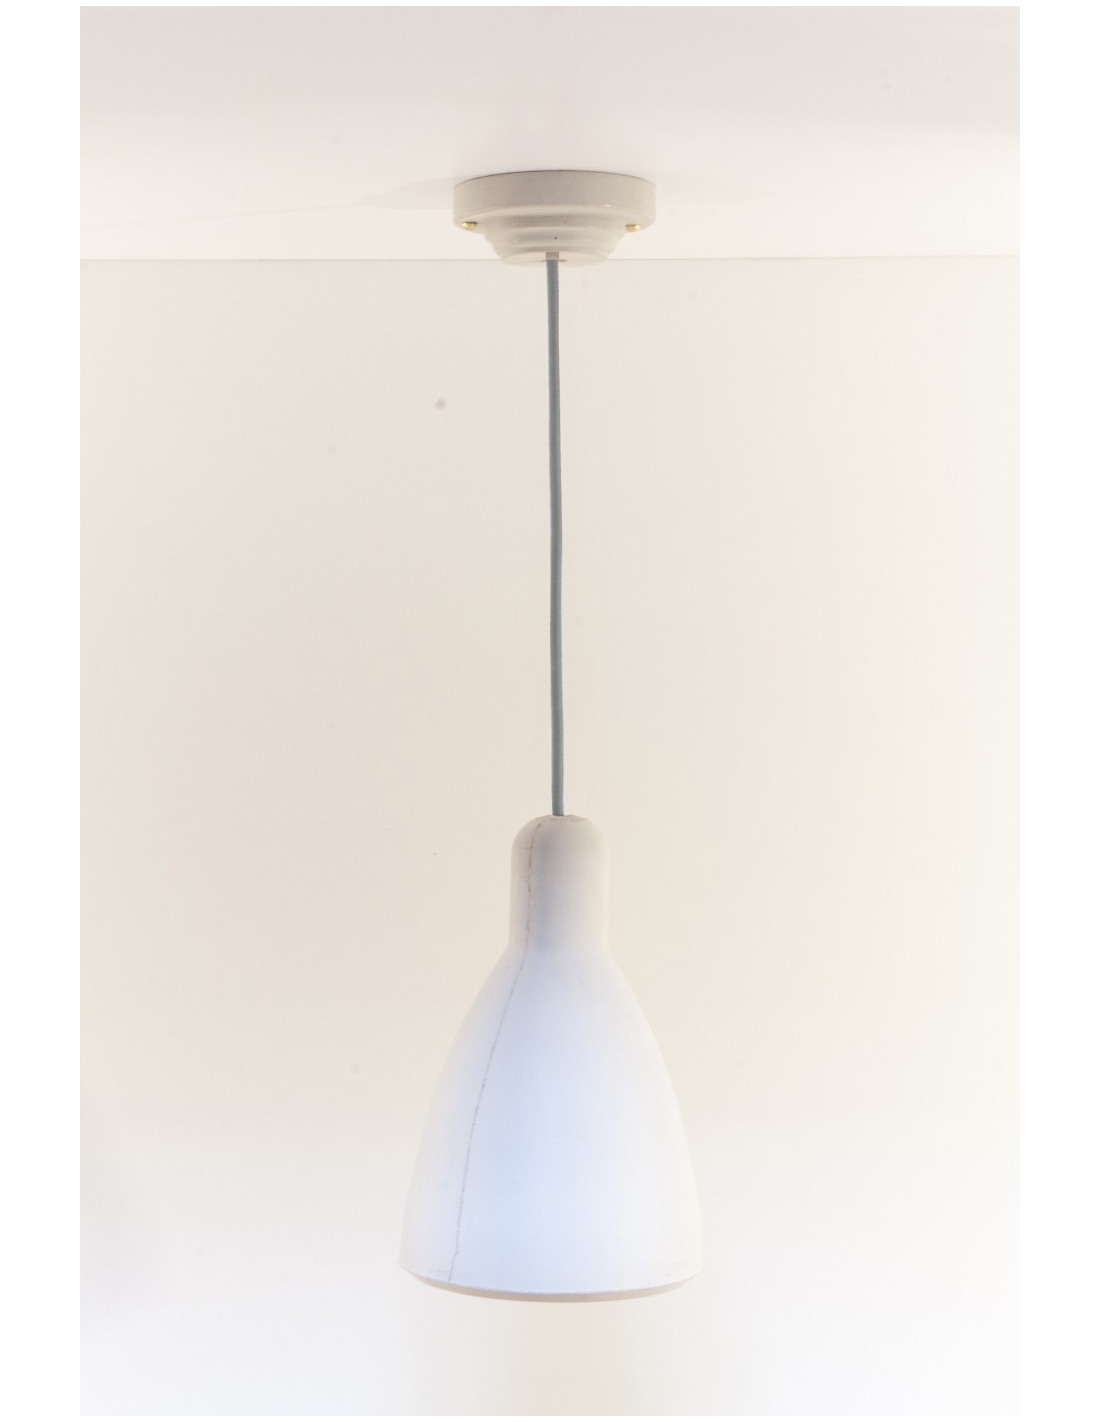 Suspension Design En B Ton Blanc Model 1 Par Seenlight Style Industriel Otoko